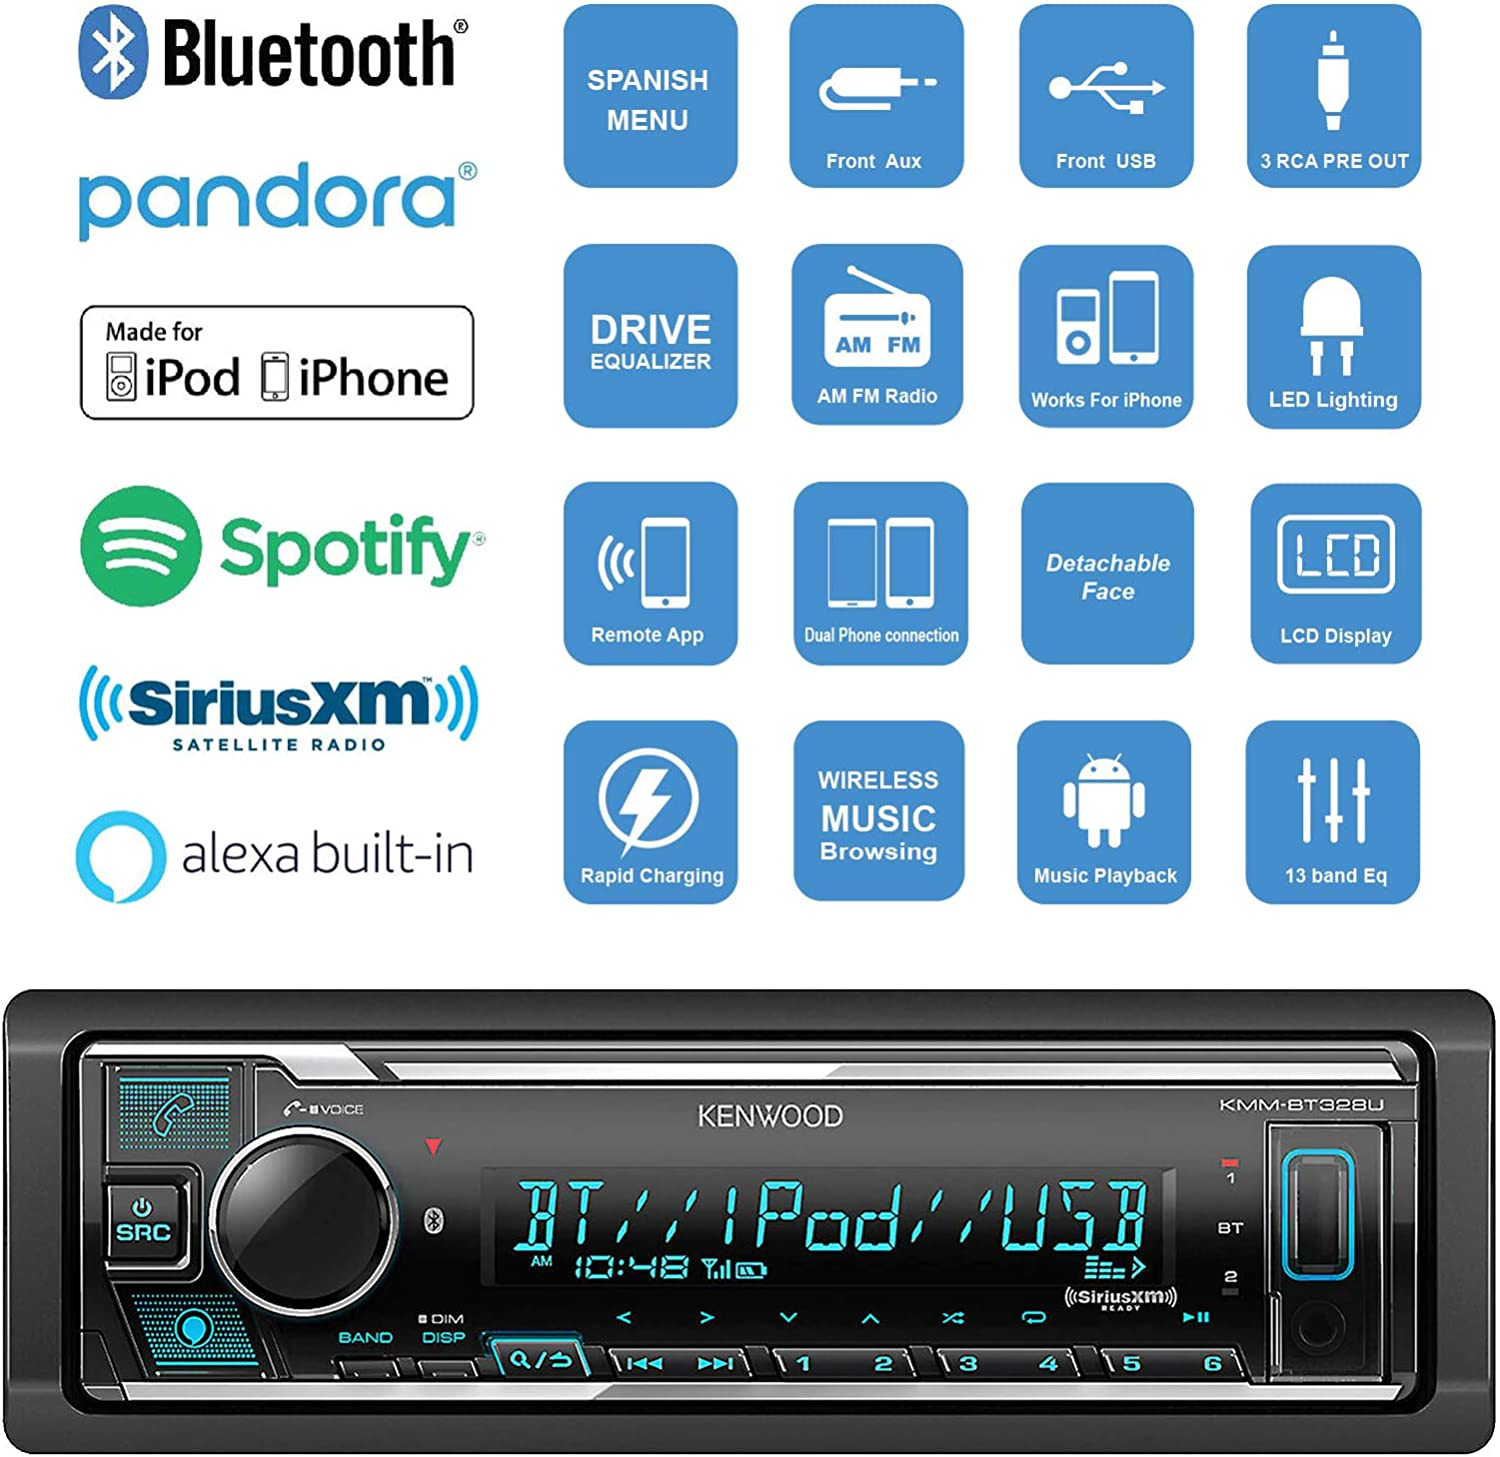 Enrock 50 Ft Speaker Wire Kenwood Single DIN Bluetooth in-Dash AM//FM Car Stereo USB AUX Receiver Bundle Combo with 4X Kenwood D-Series 6x8 Custom Fit 360W Car Audio Coaxial Speakers